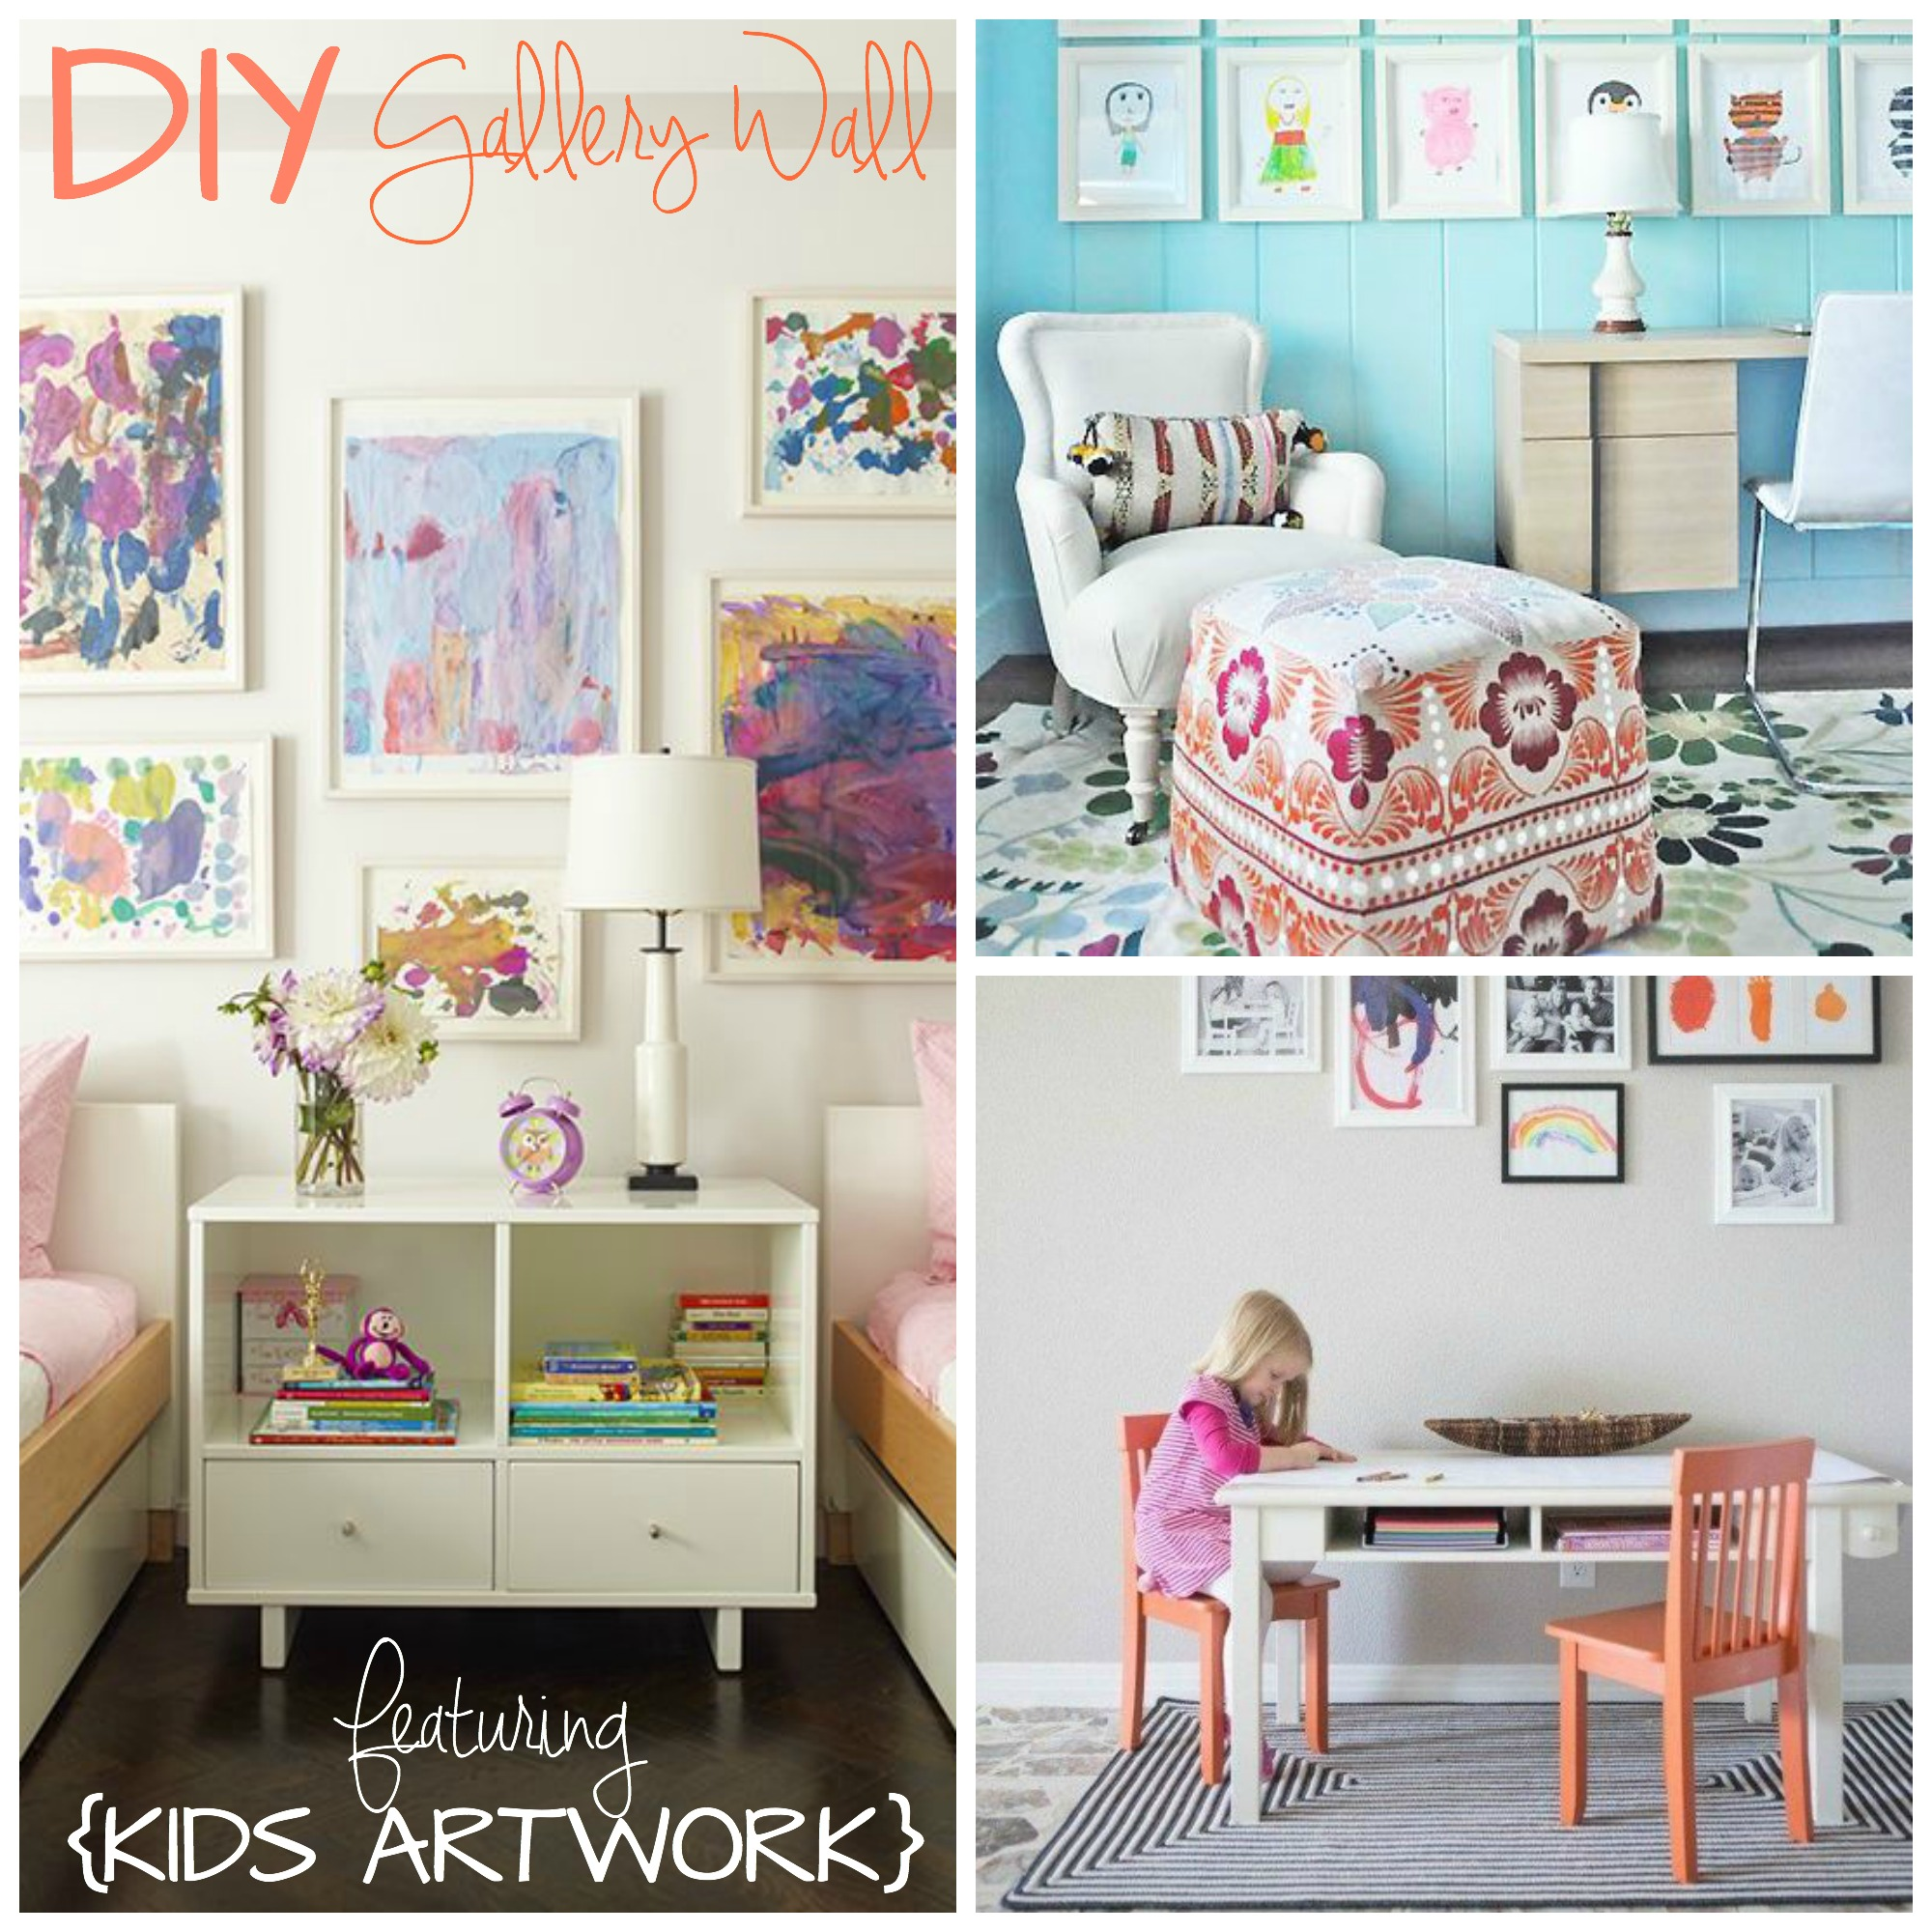 Diy gallery walls with kids artwork mindy cone getcreativejuice